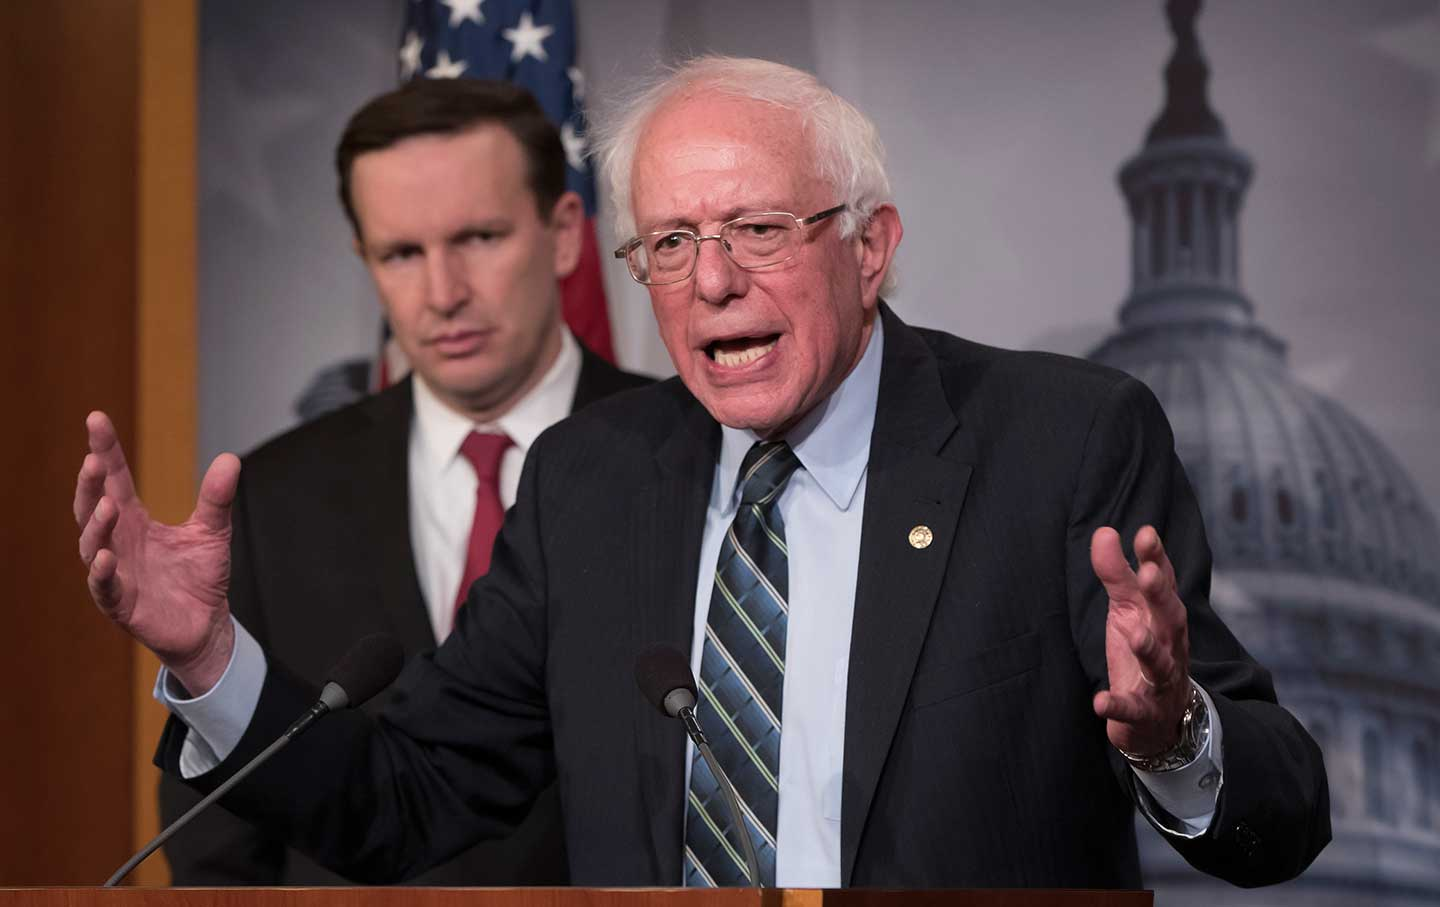 Bernie Sanders Does Not Need to Apologize For Opposing Wars